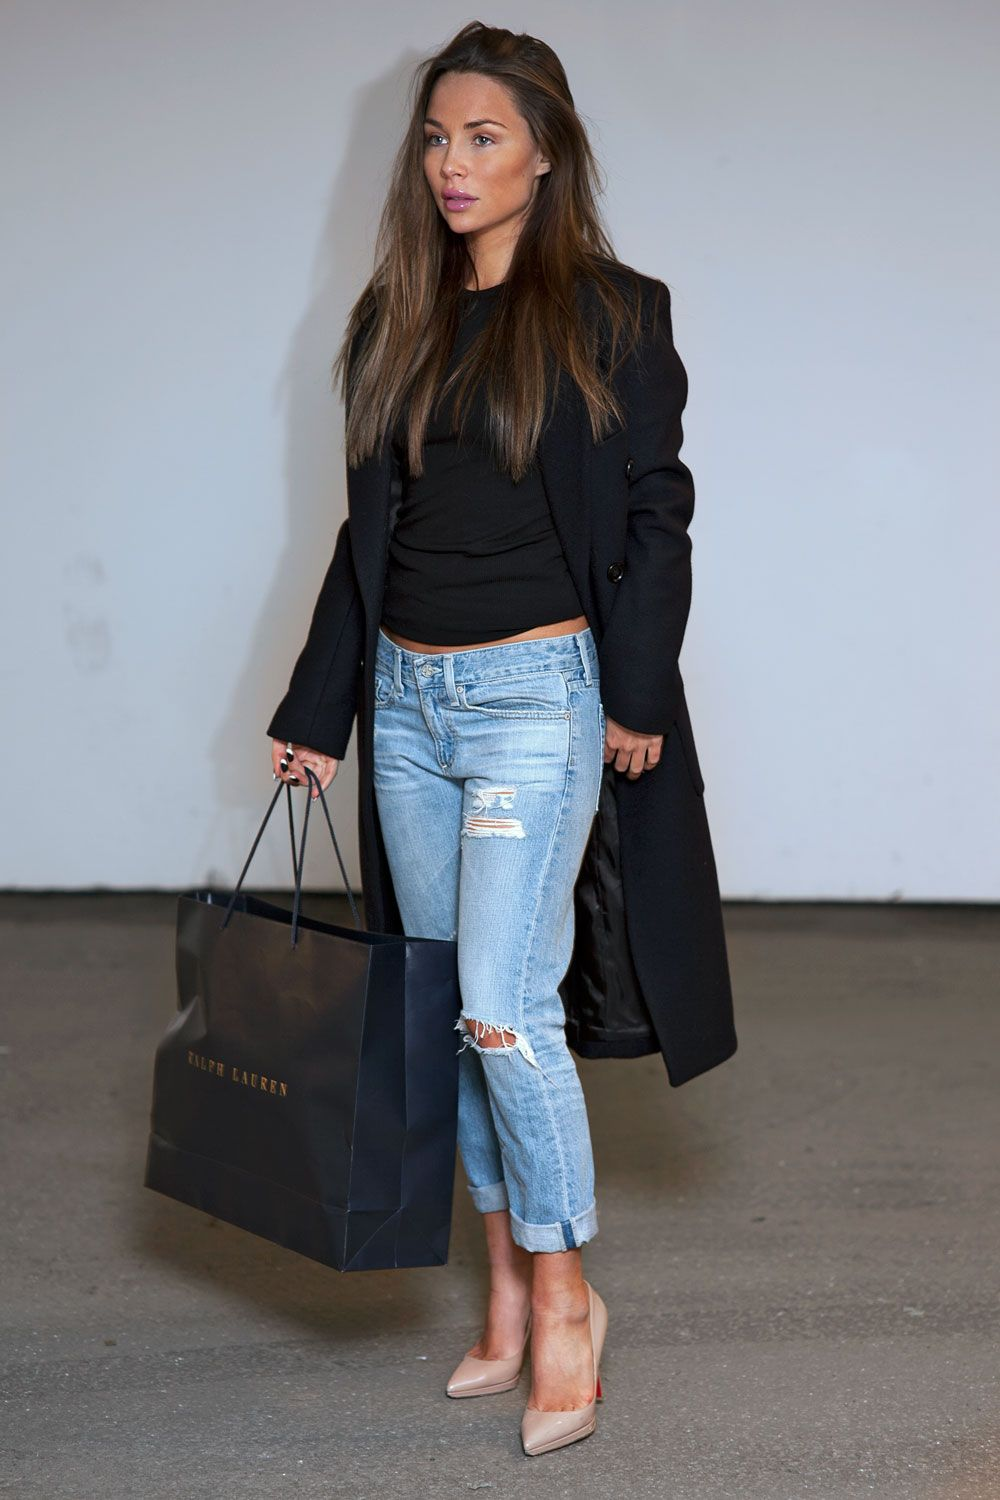 Boyfriend jeans, cropped black sweater, nude heels and a great ...